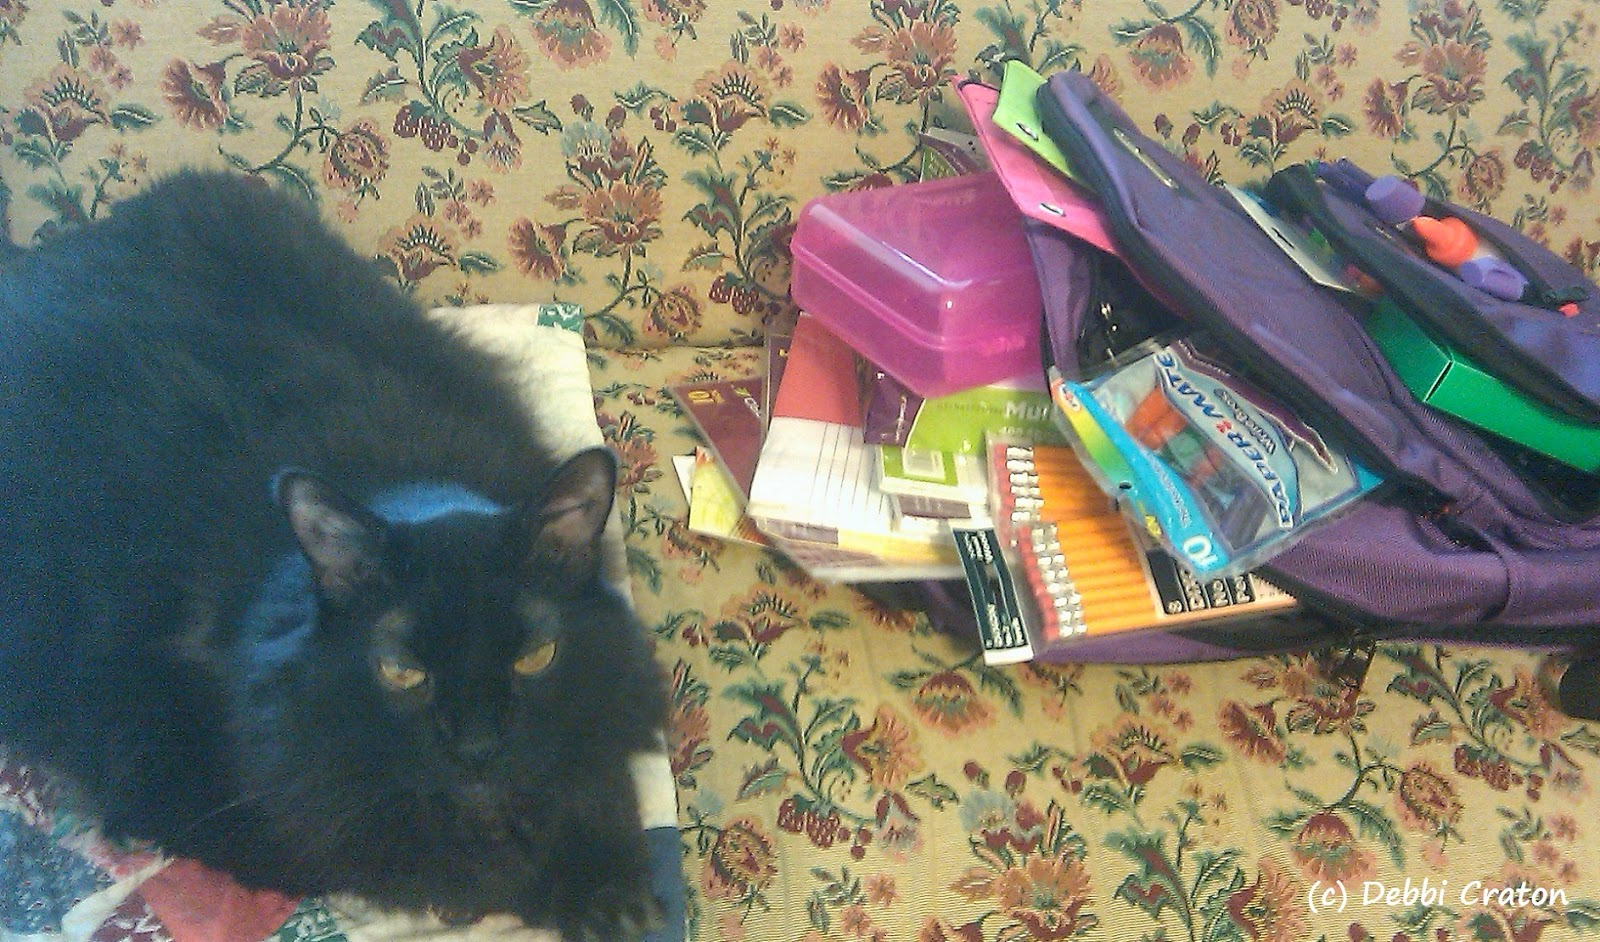 Guiness the Cat hijacks a photo of school supplies